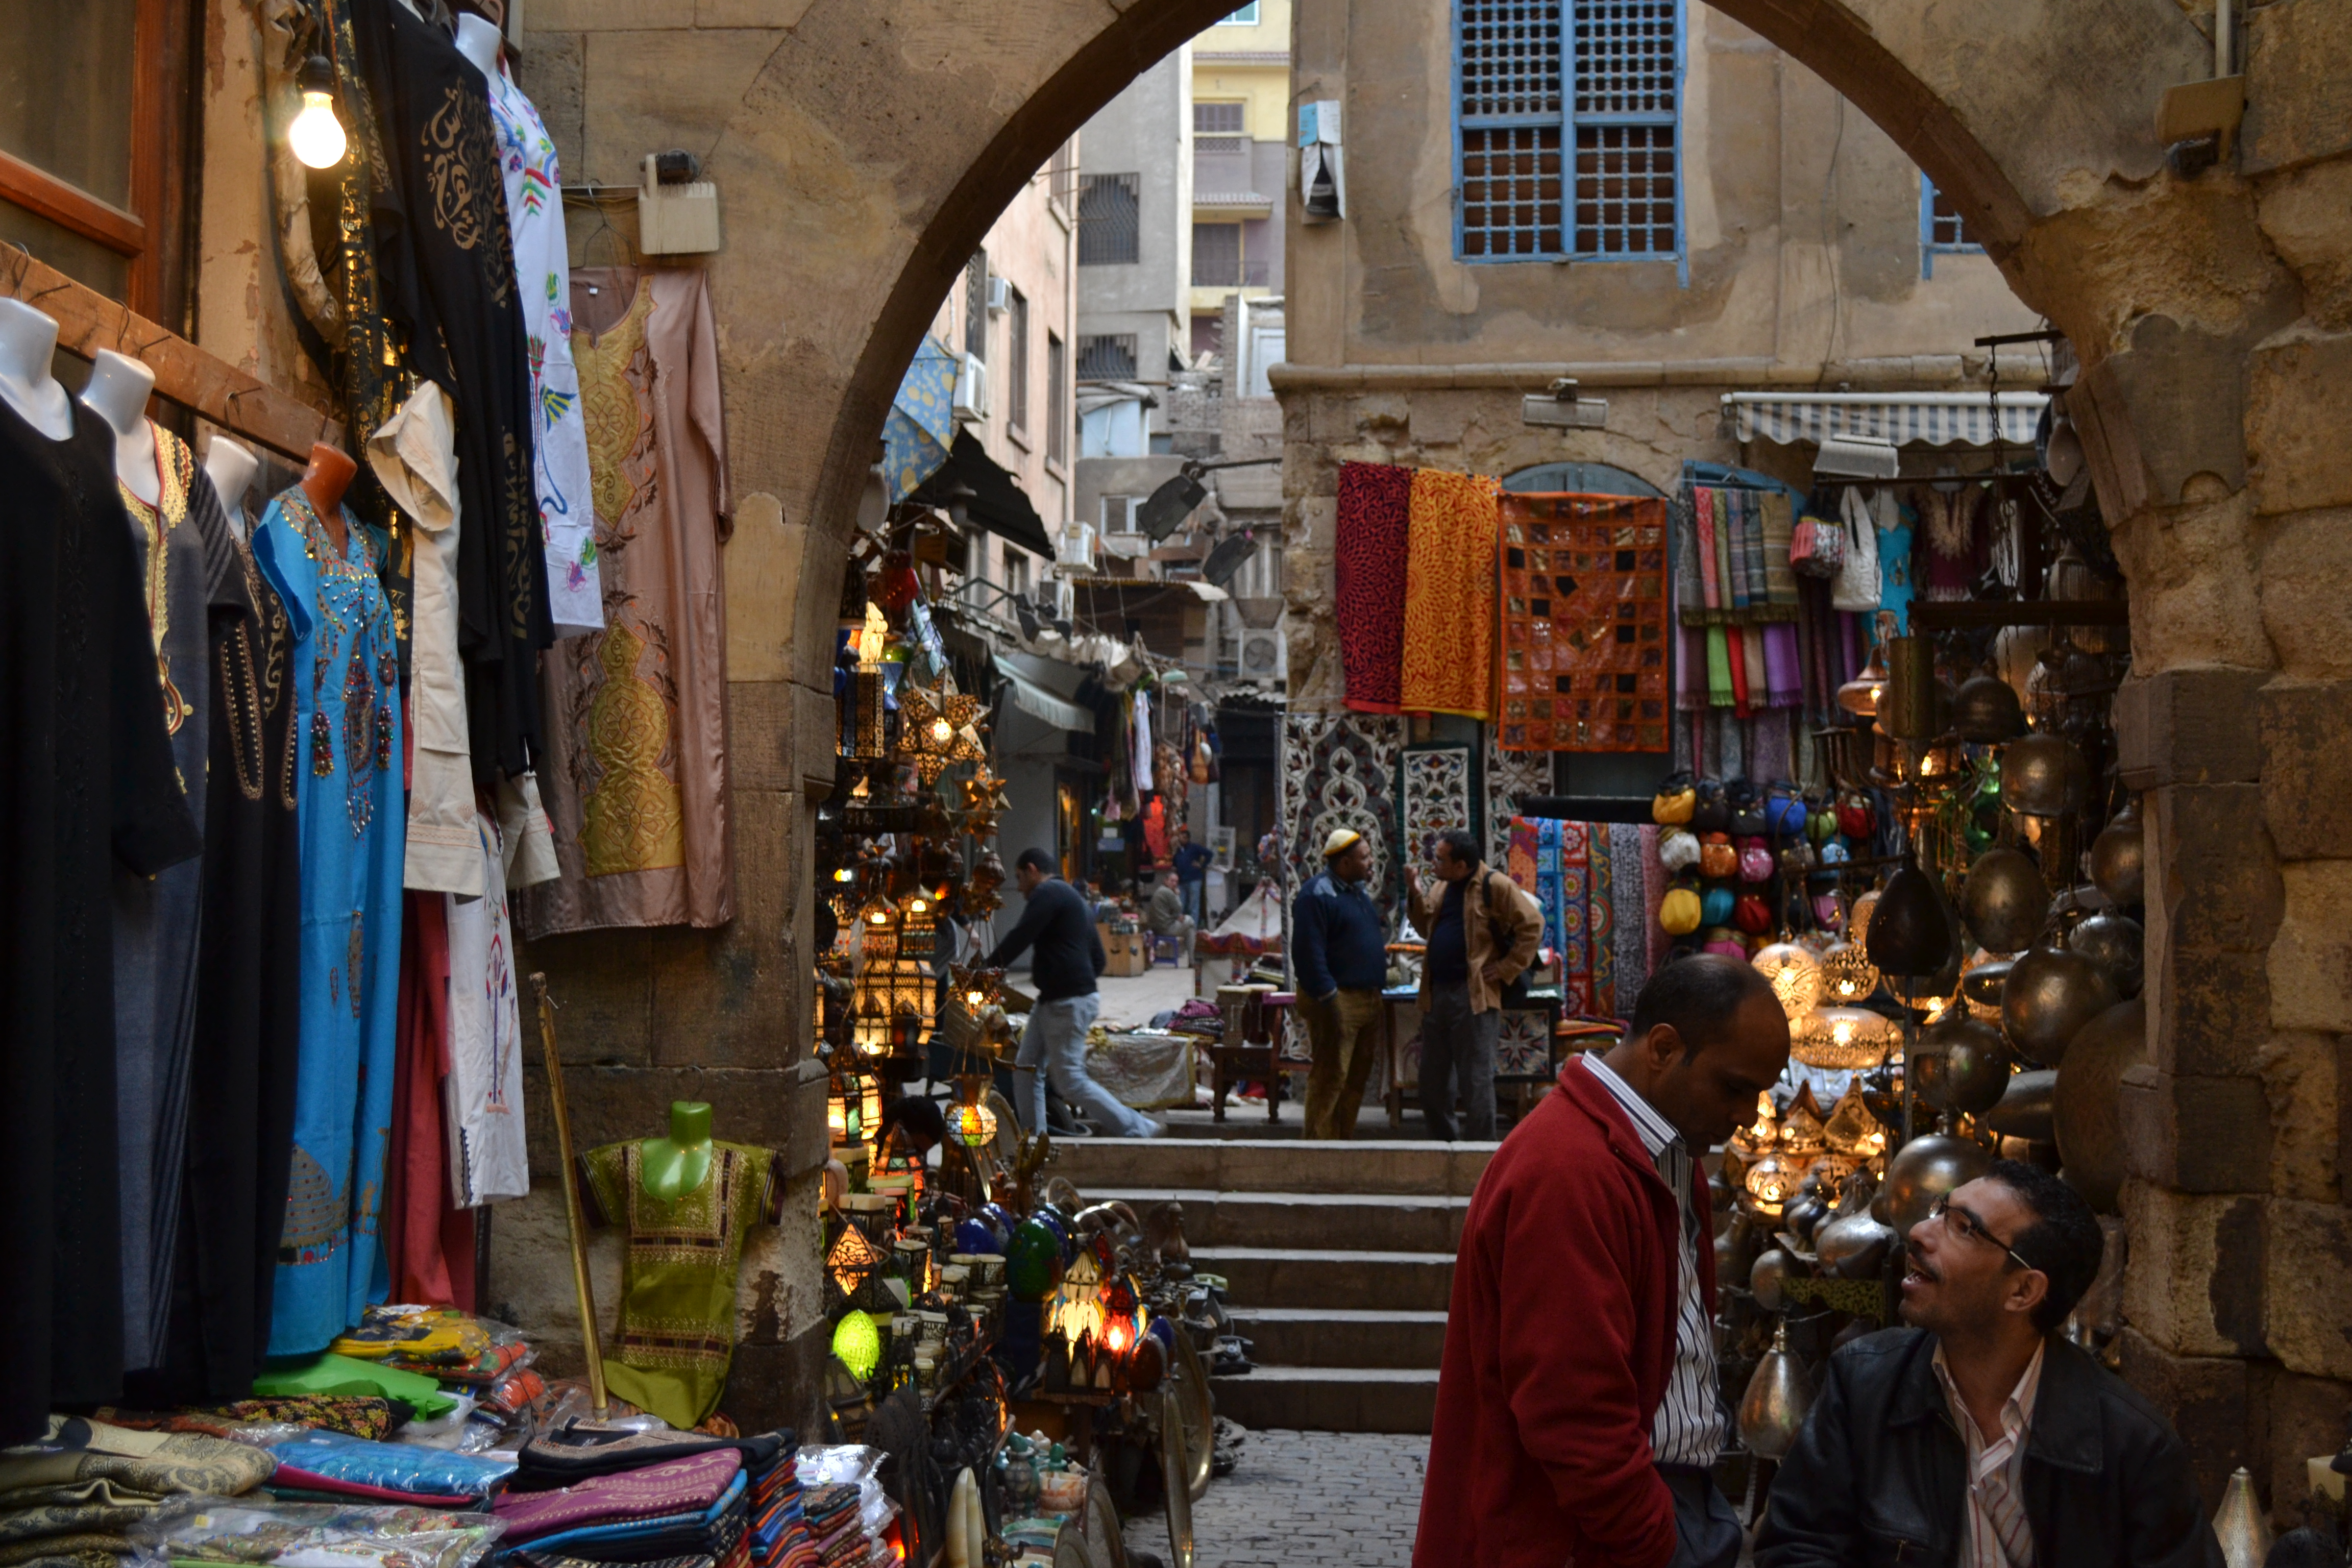 Khan El-Khalili: A maze of alleyways